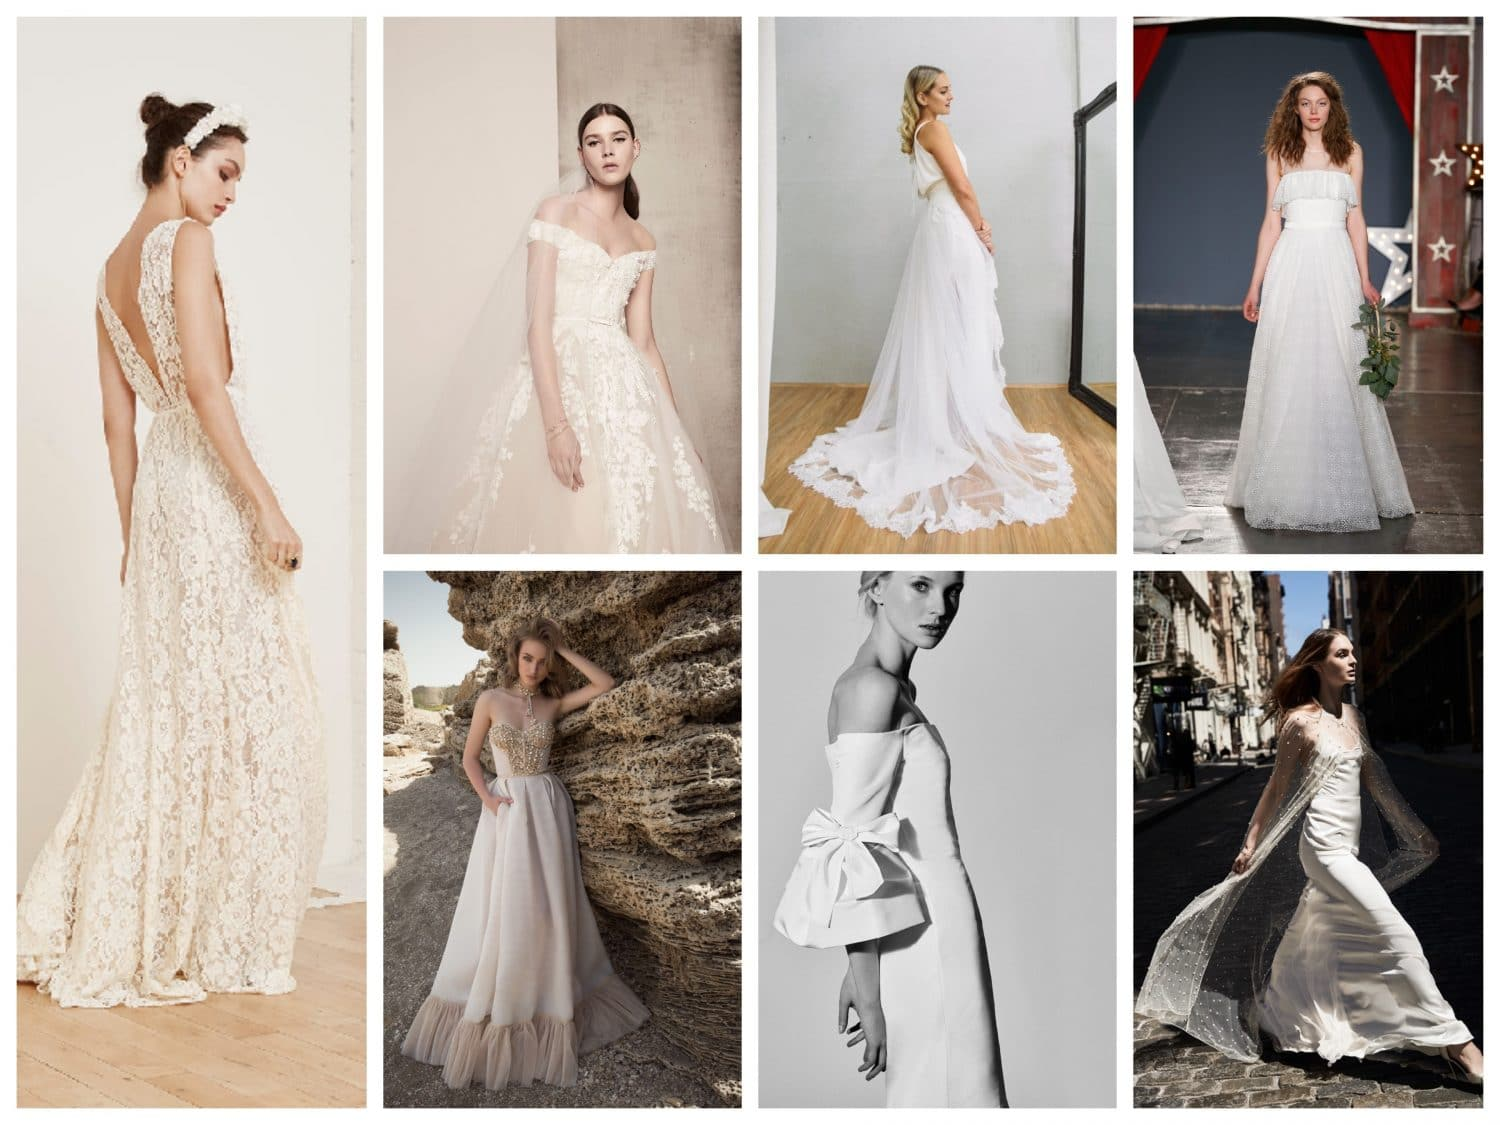 Best of Bridal Spring-Summer 2018 - Capesthorne Hall and Weddings